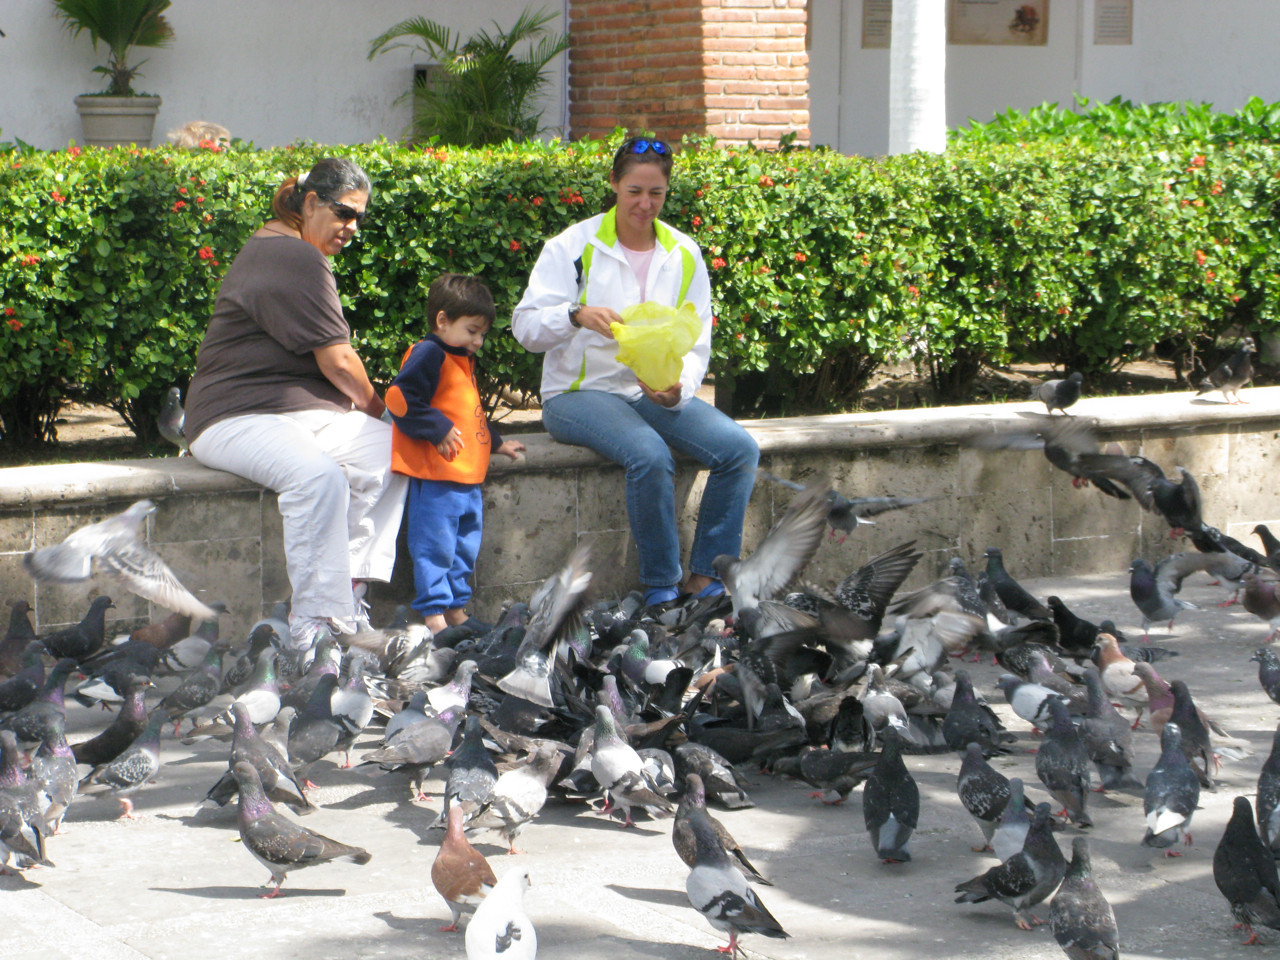 Kids feeding pigeons in the square.